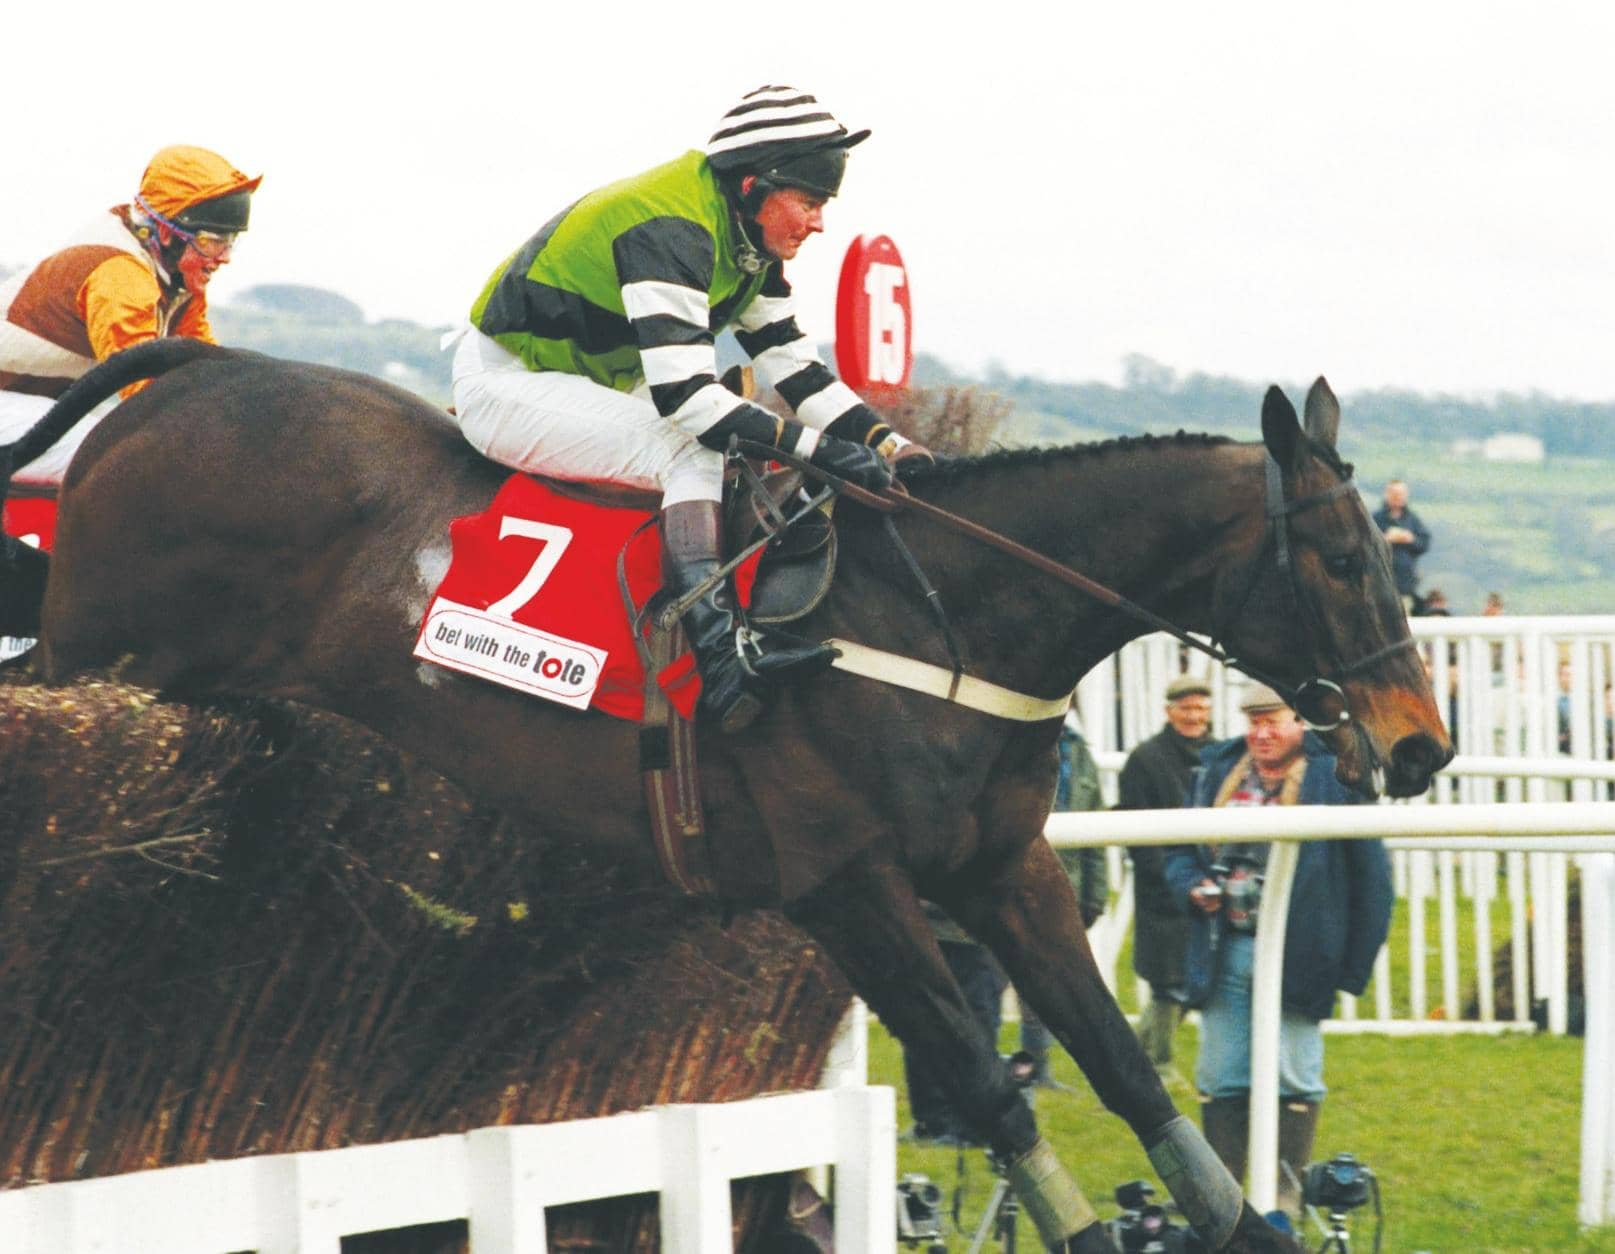 FAMILY PET WHO WON GOLD CUP